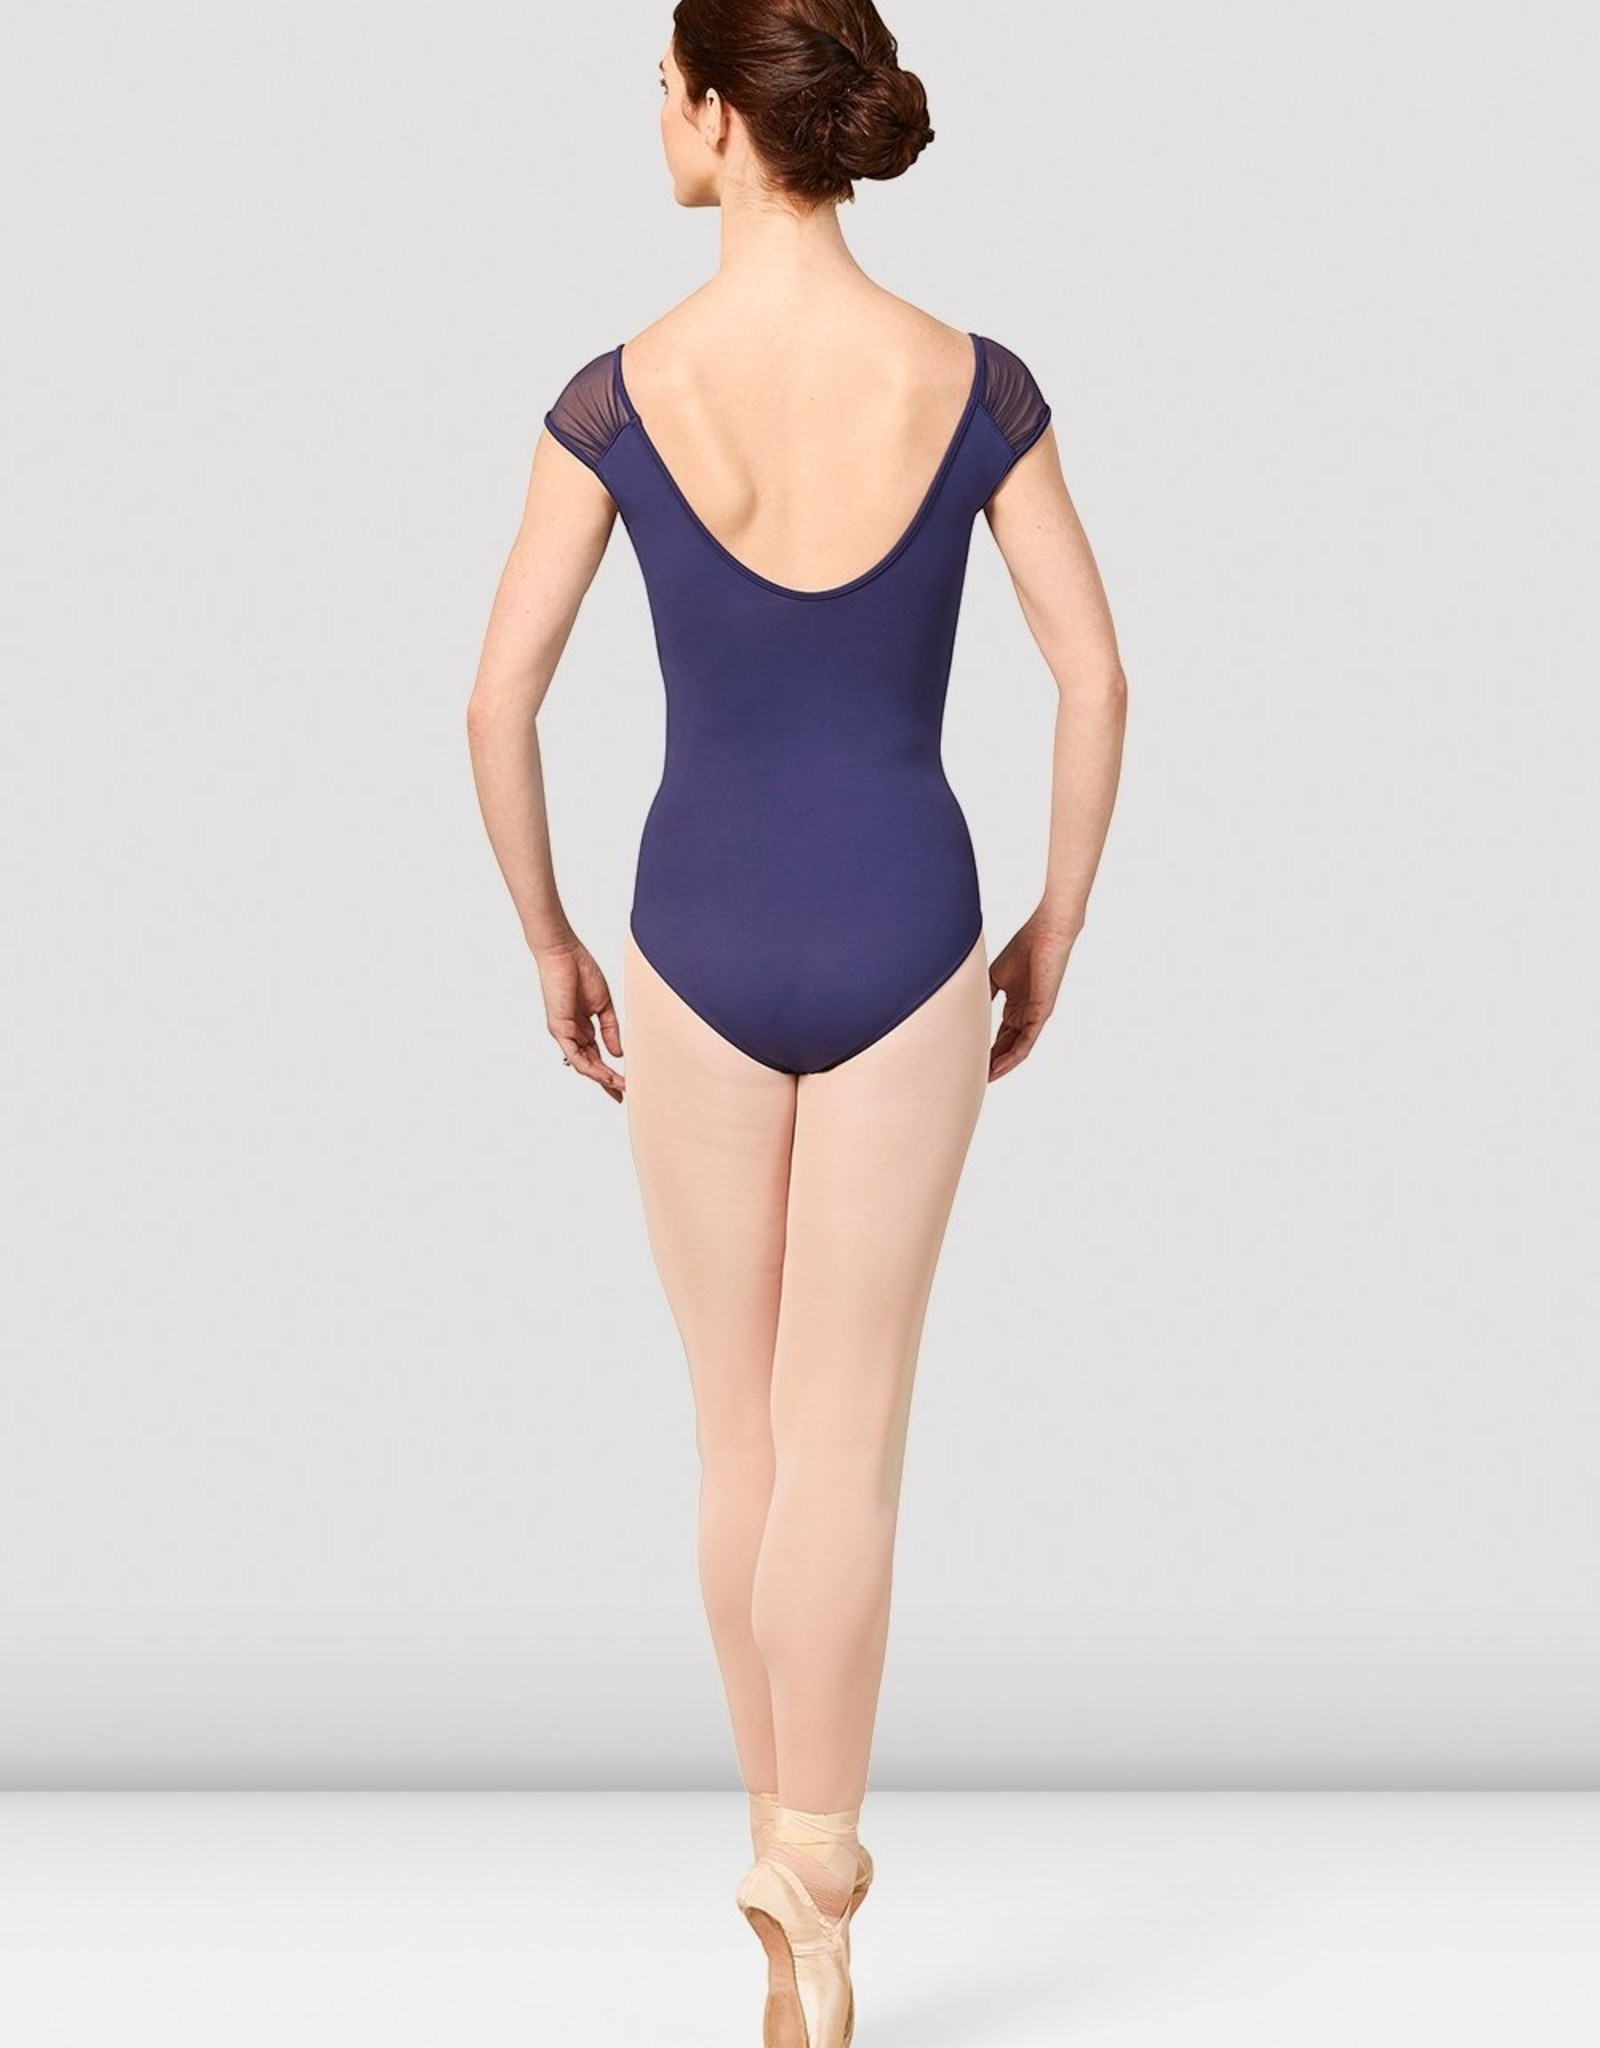 Bloch Bloch Gather Mesh Cap Sleeve Leotard - M5090LM